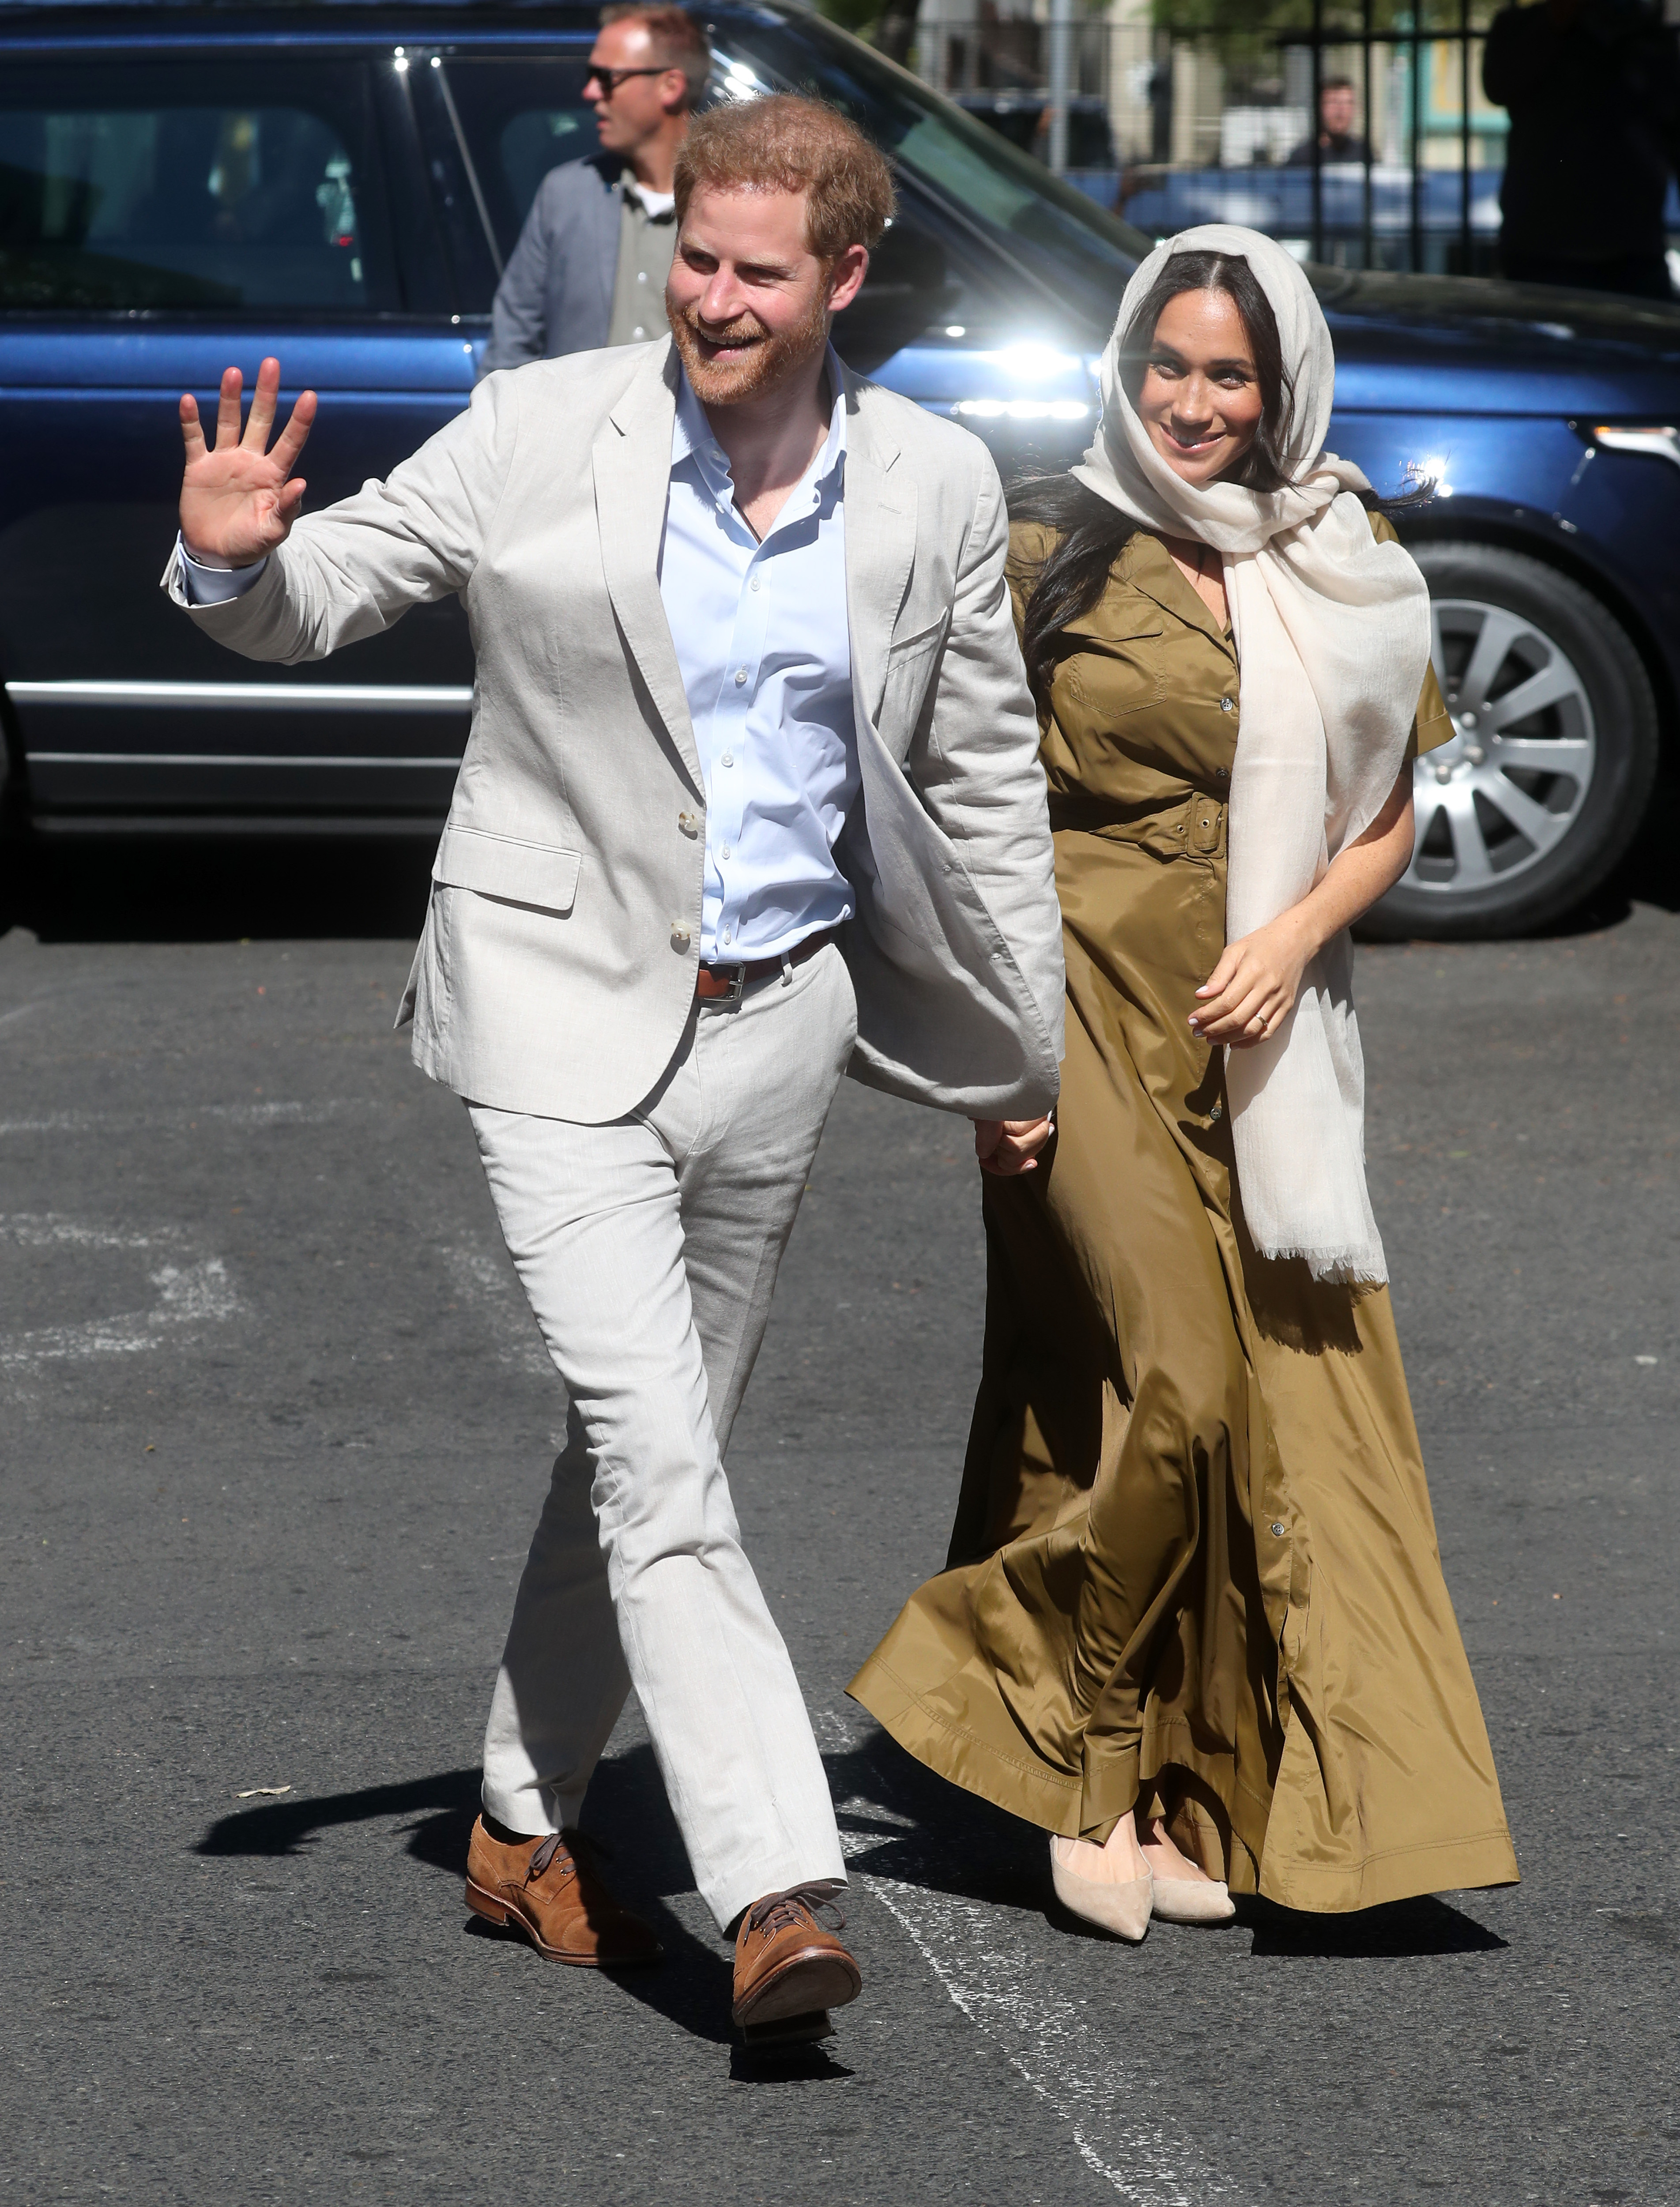 Prince Harry, Duke of Sussex and Meghan, Duchess of Sussex visit Cape Town's Auwal Mosque during their royal tour of South Africa.